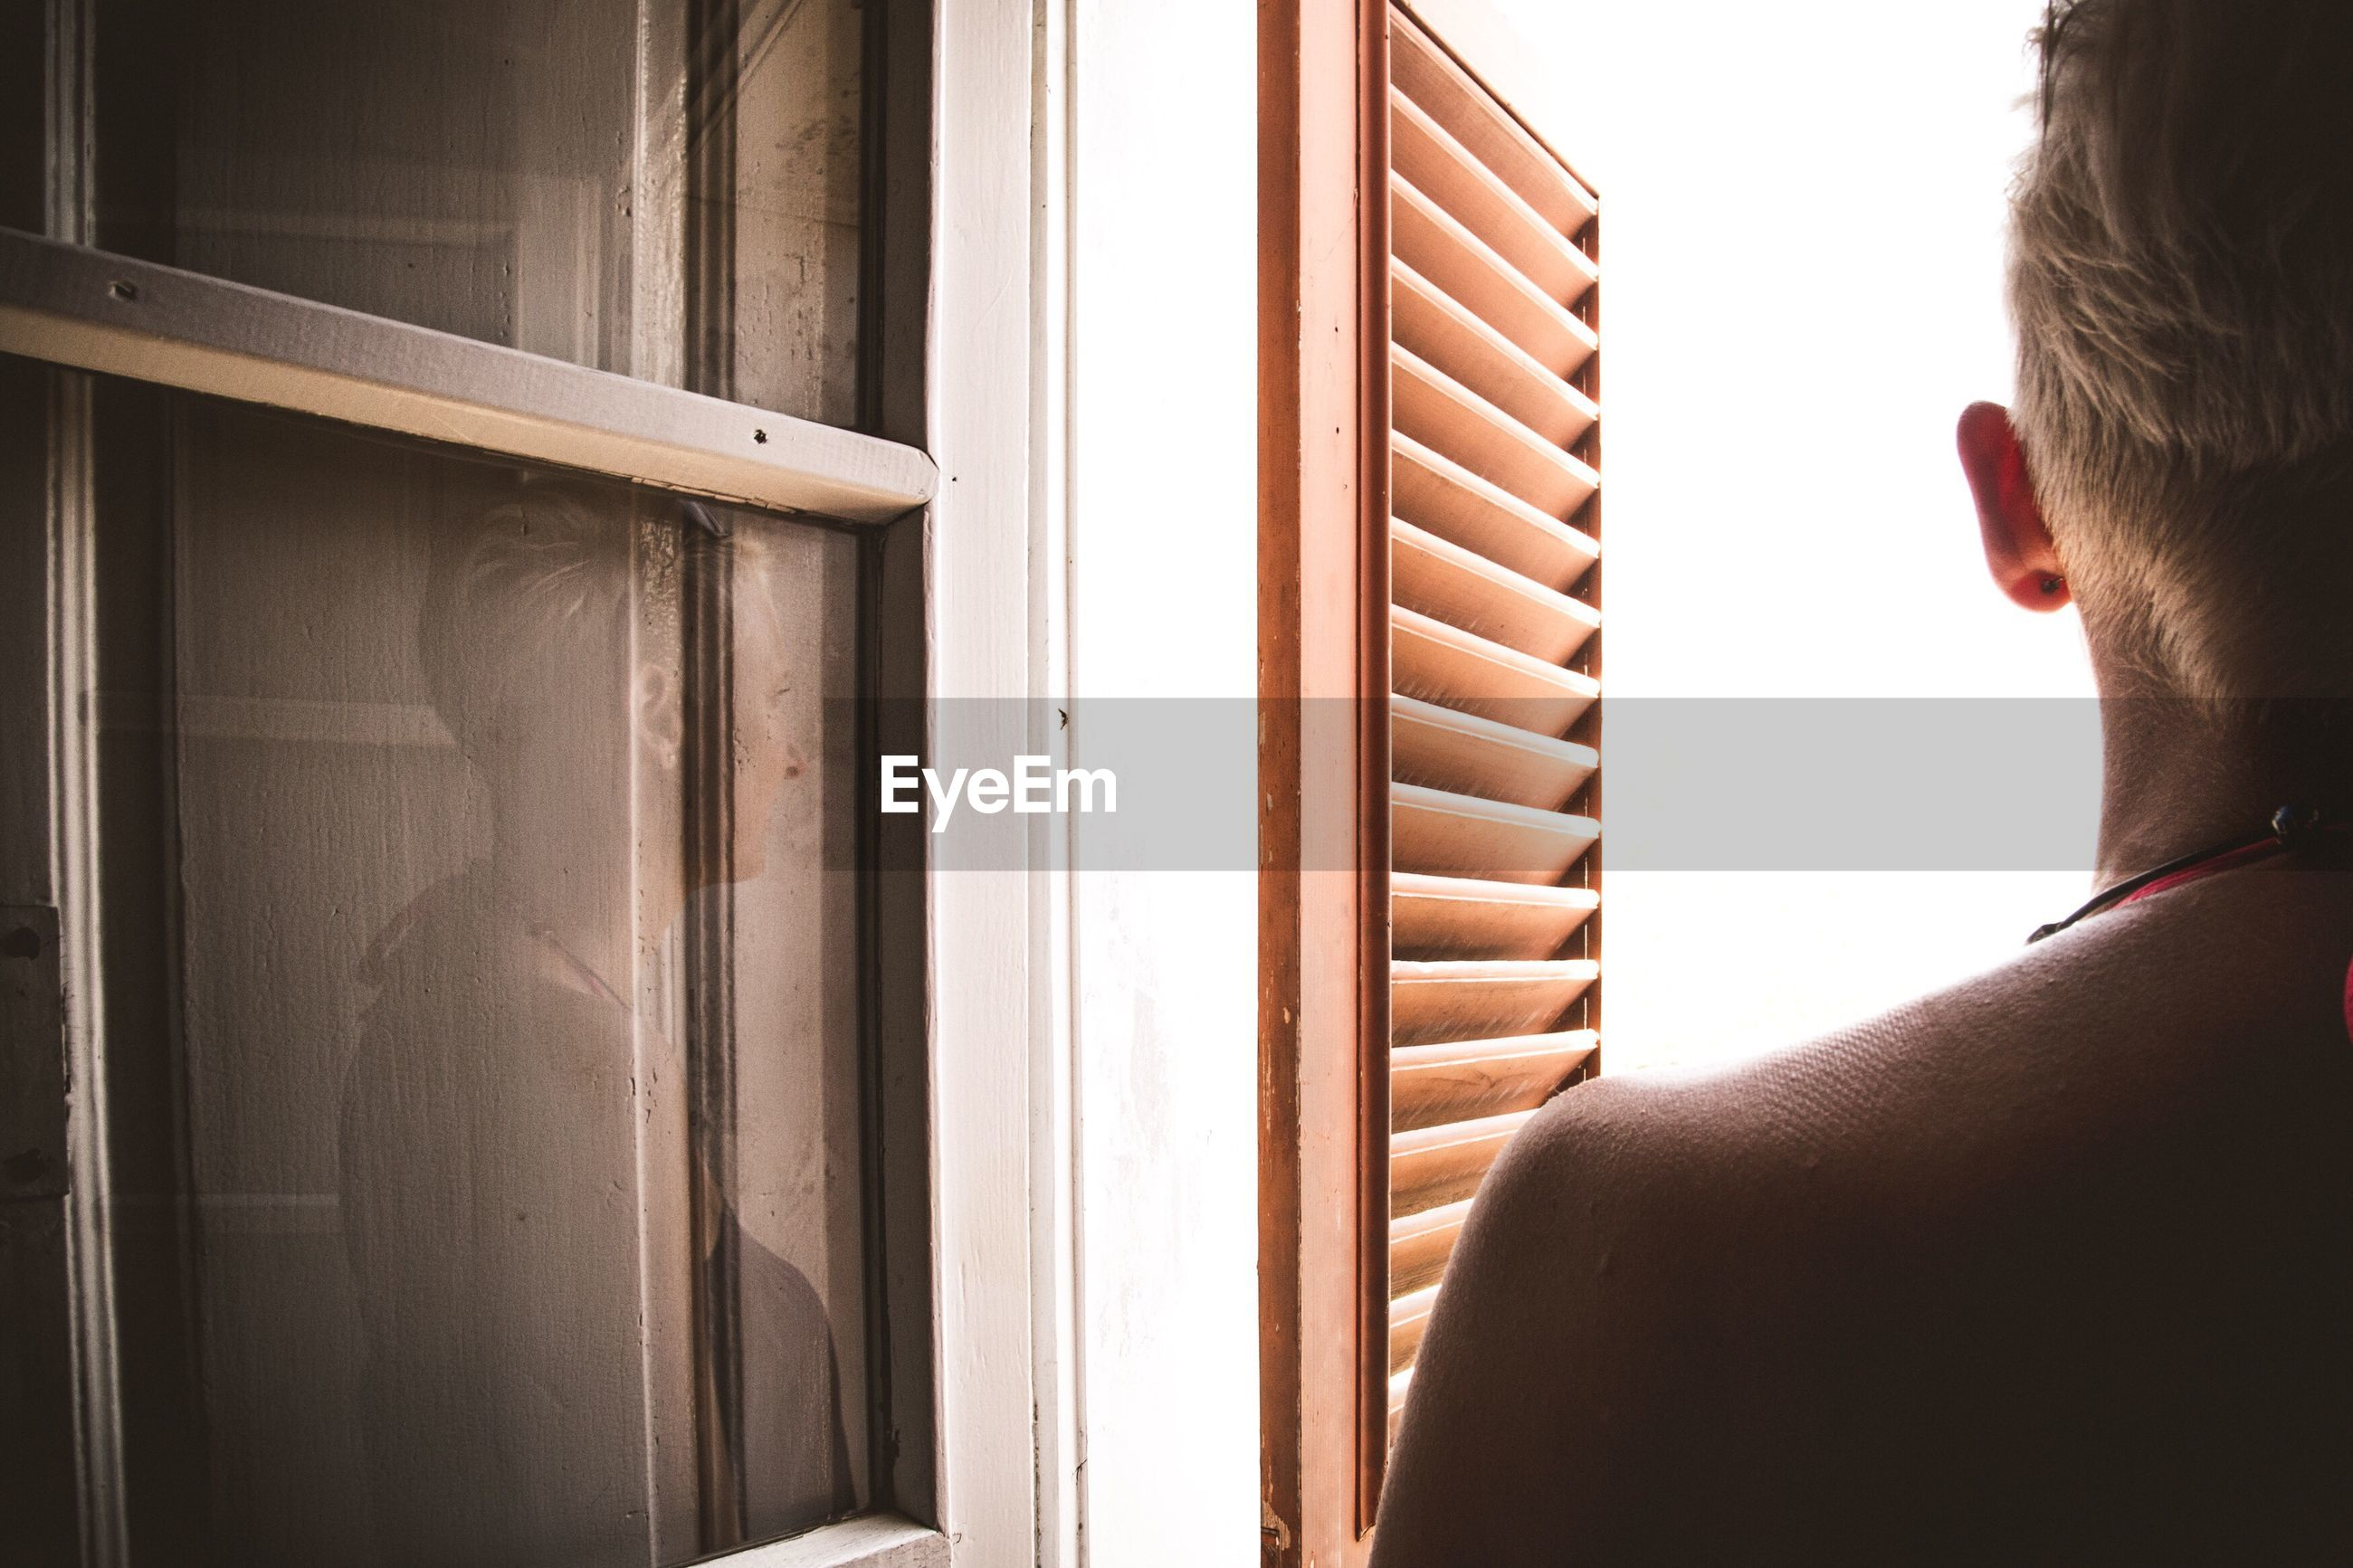 Cropped image of woman looking through window